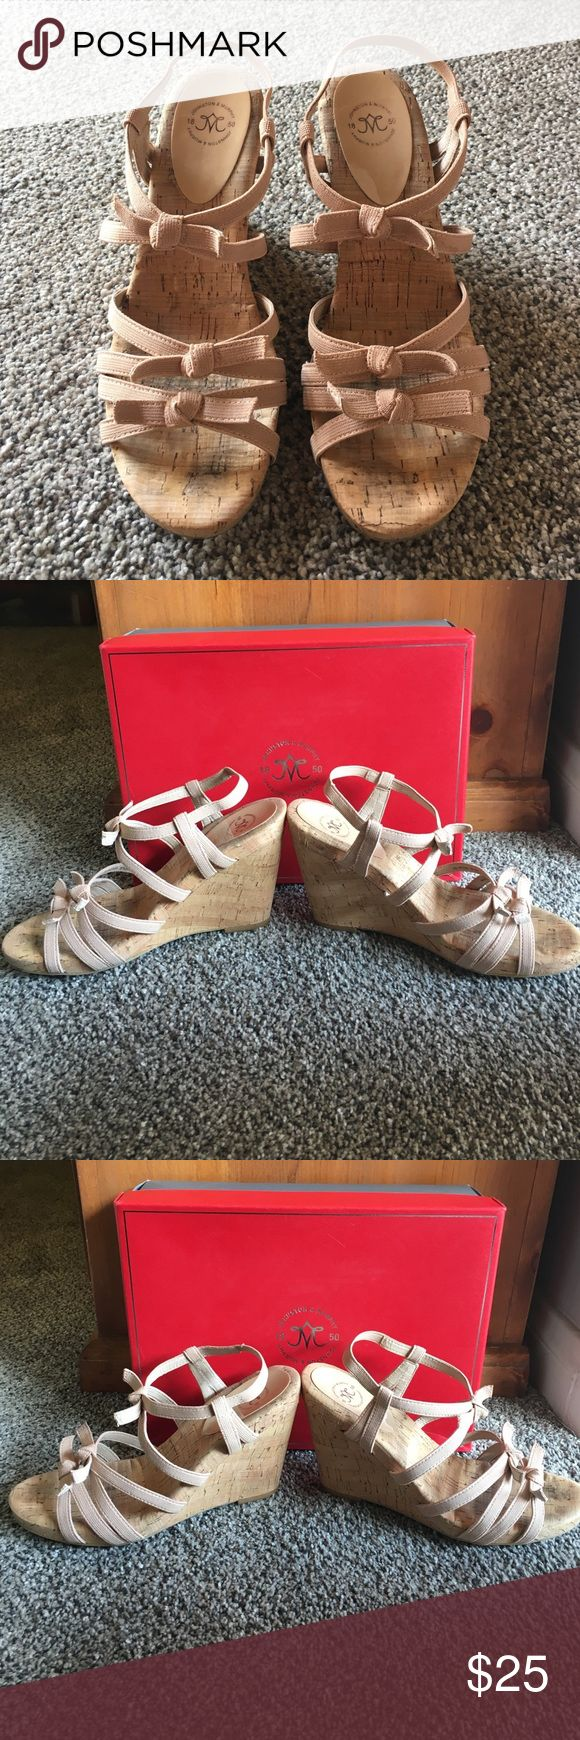 """Johnston & Murphy Strappy Wedges Adorable, gently worn nude strappy sandals by Johnston and Murphy.  Worn a handful of times.  4 1/8"""" cork wedge heel.  Straps are elastic outside, lined with leather.  Adorable knotted bow-like details!🎀😍 Reasonable offers welcome! (Bag and necklace are also for sale in my closet, bundle and save!😉) Johnston & Murphy Shoes Sandals"""